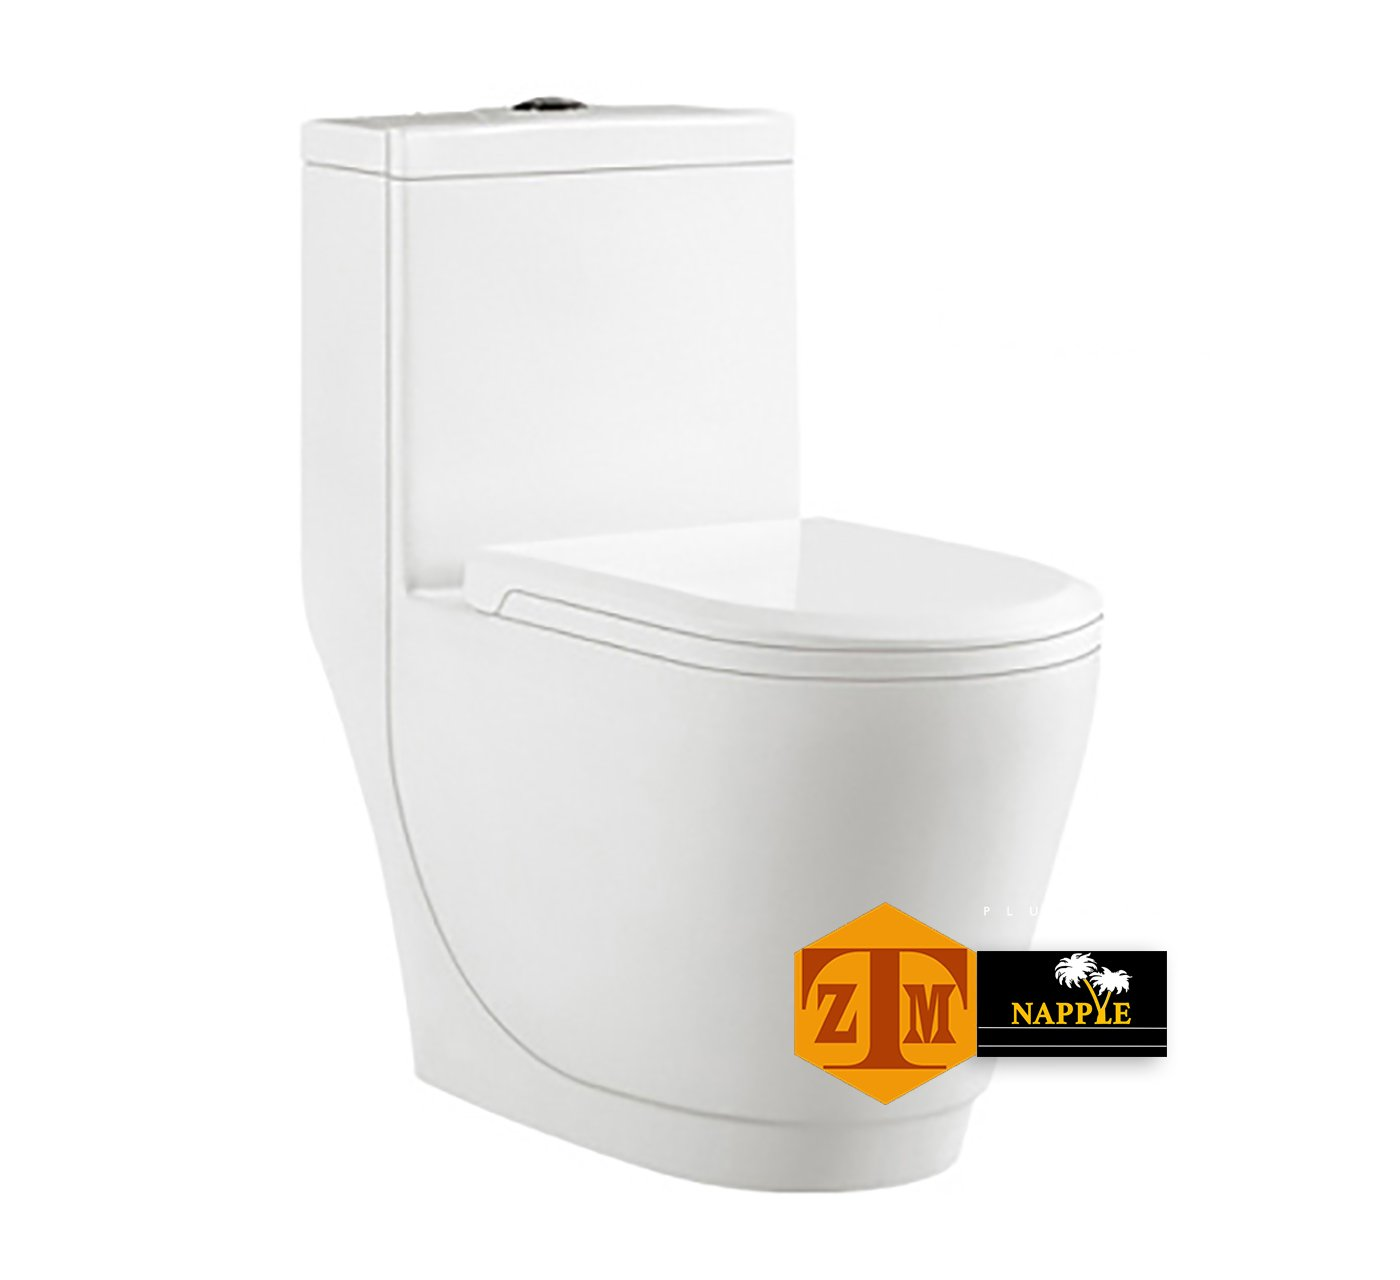 NAYT98142P Luxury SIPHONIC White Porcelain One-Piece Construction Toilet, With Round Seat and Comfort Height, A Siphonic High Efficiency Eco-Friendly Action w/ Dual Flush 1.6/1.0GPF, UPC Certified